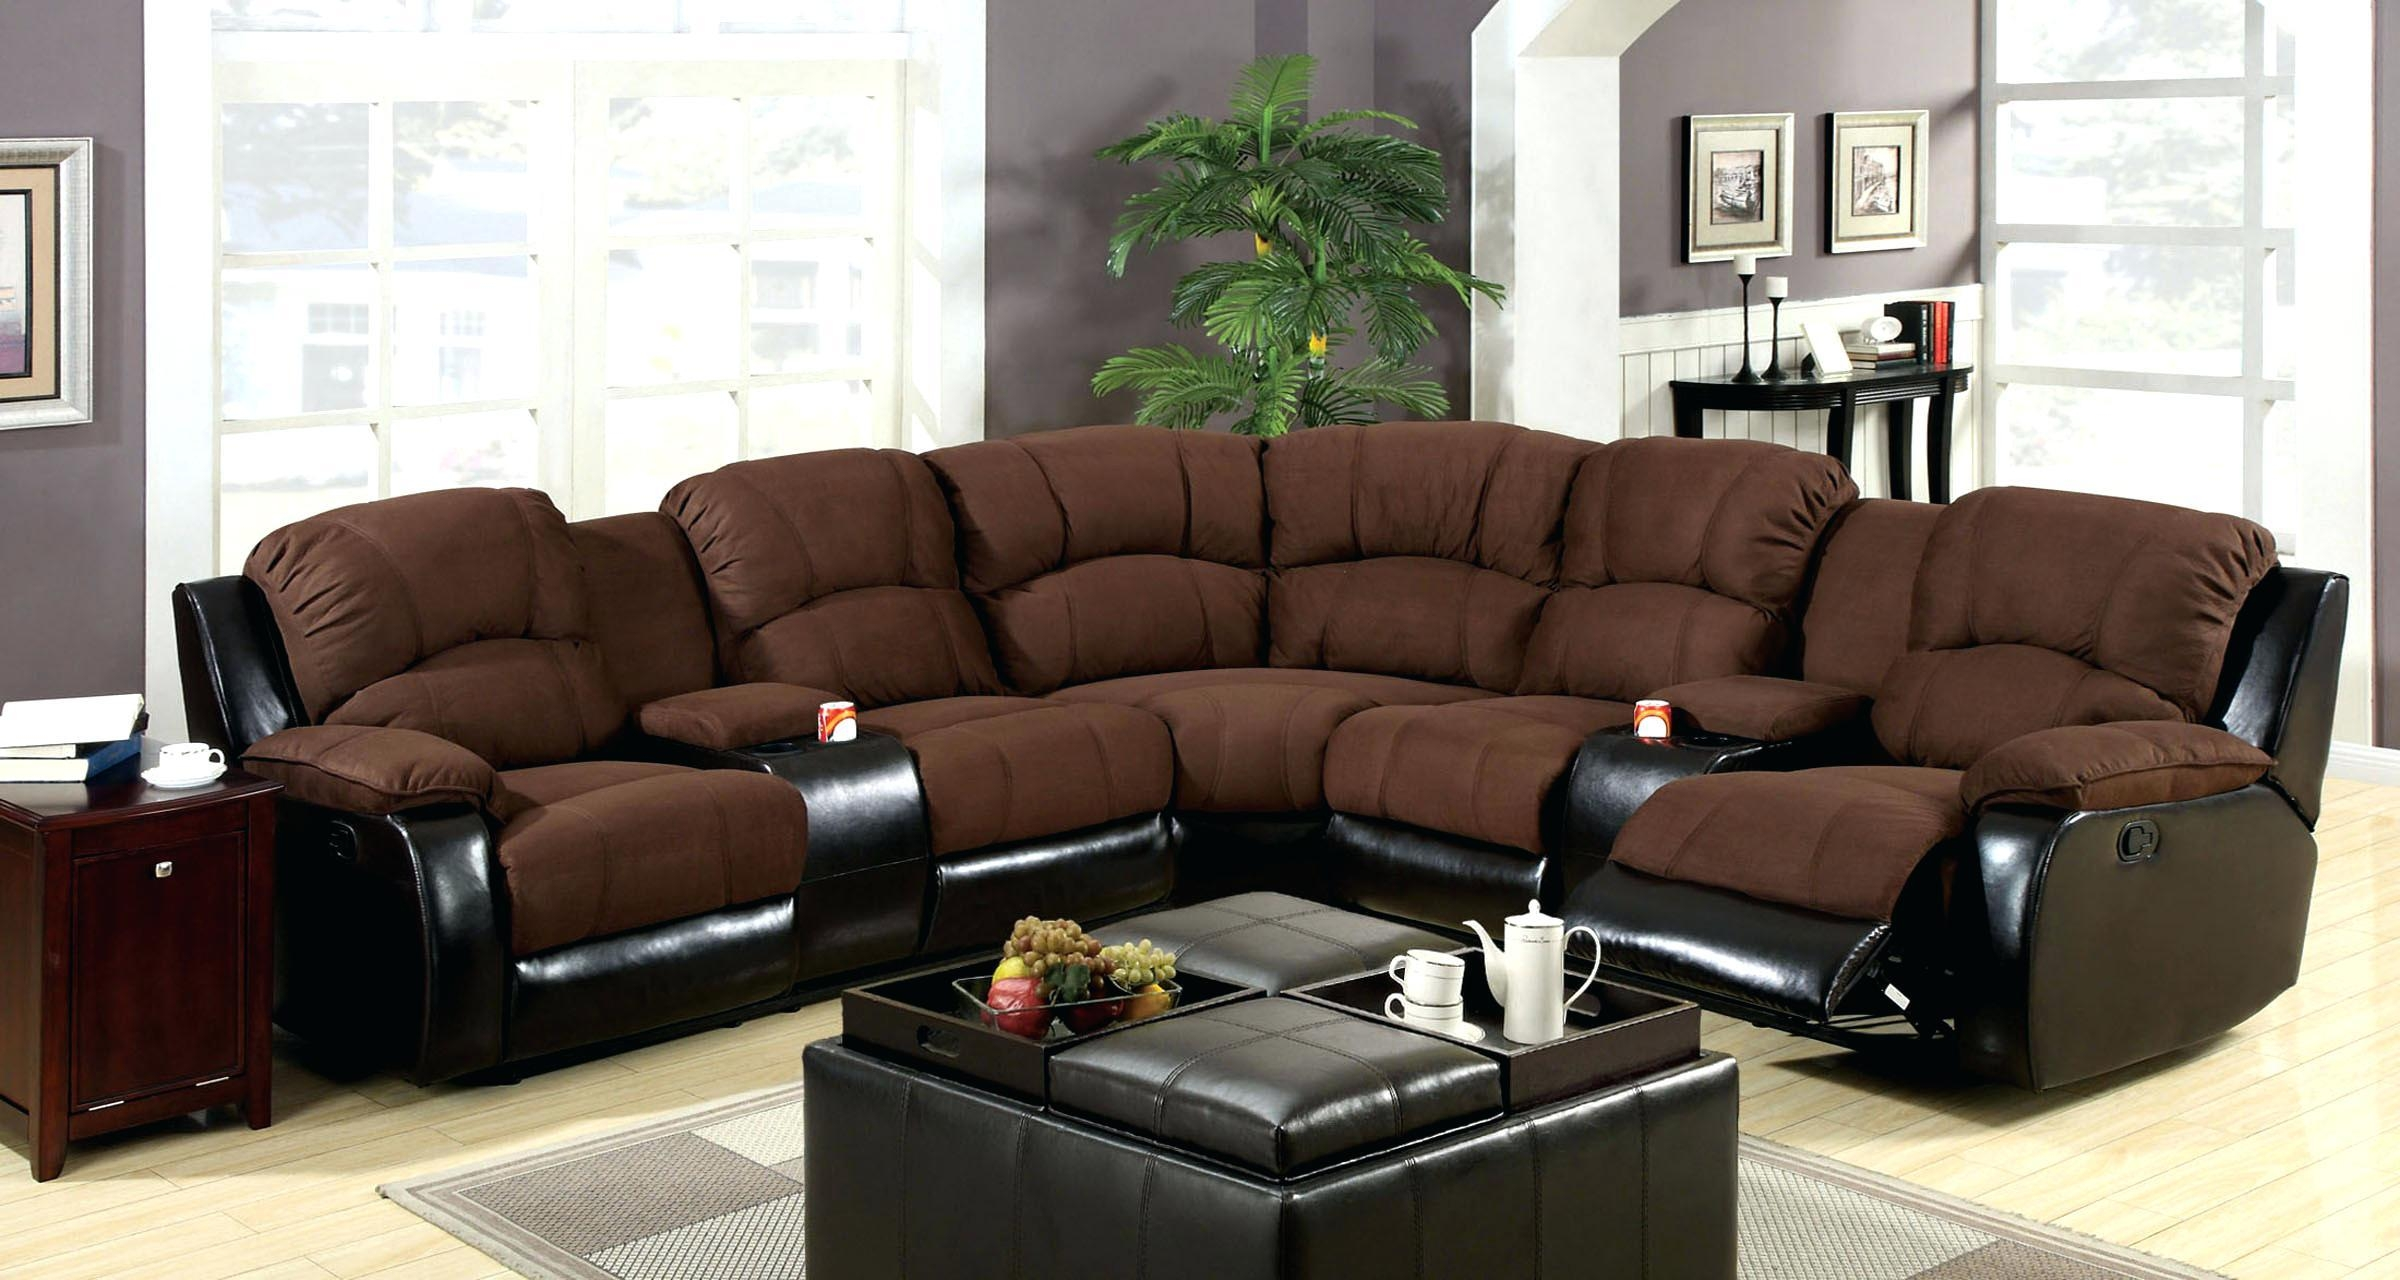 Gray Reclining Sectional Cup Holders A Hardy Bonded Leather With With Regard To Sectional With Cup Holders (Image 7 of 20)